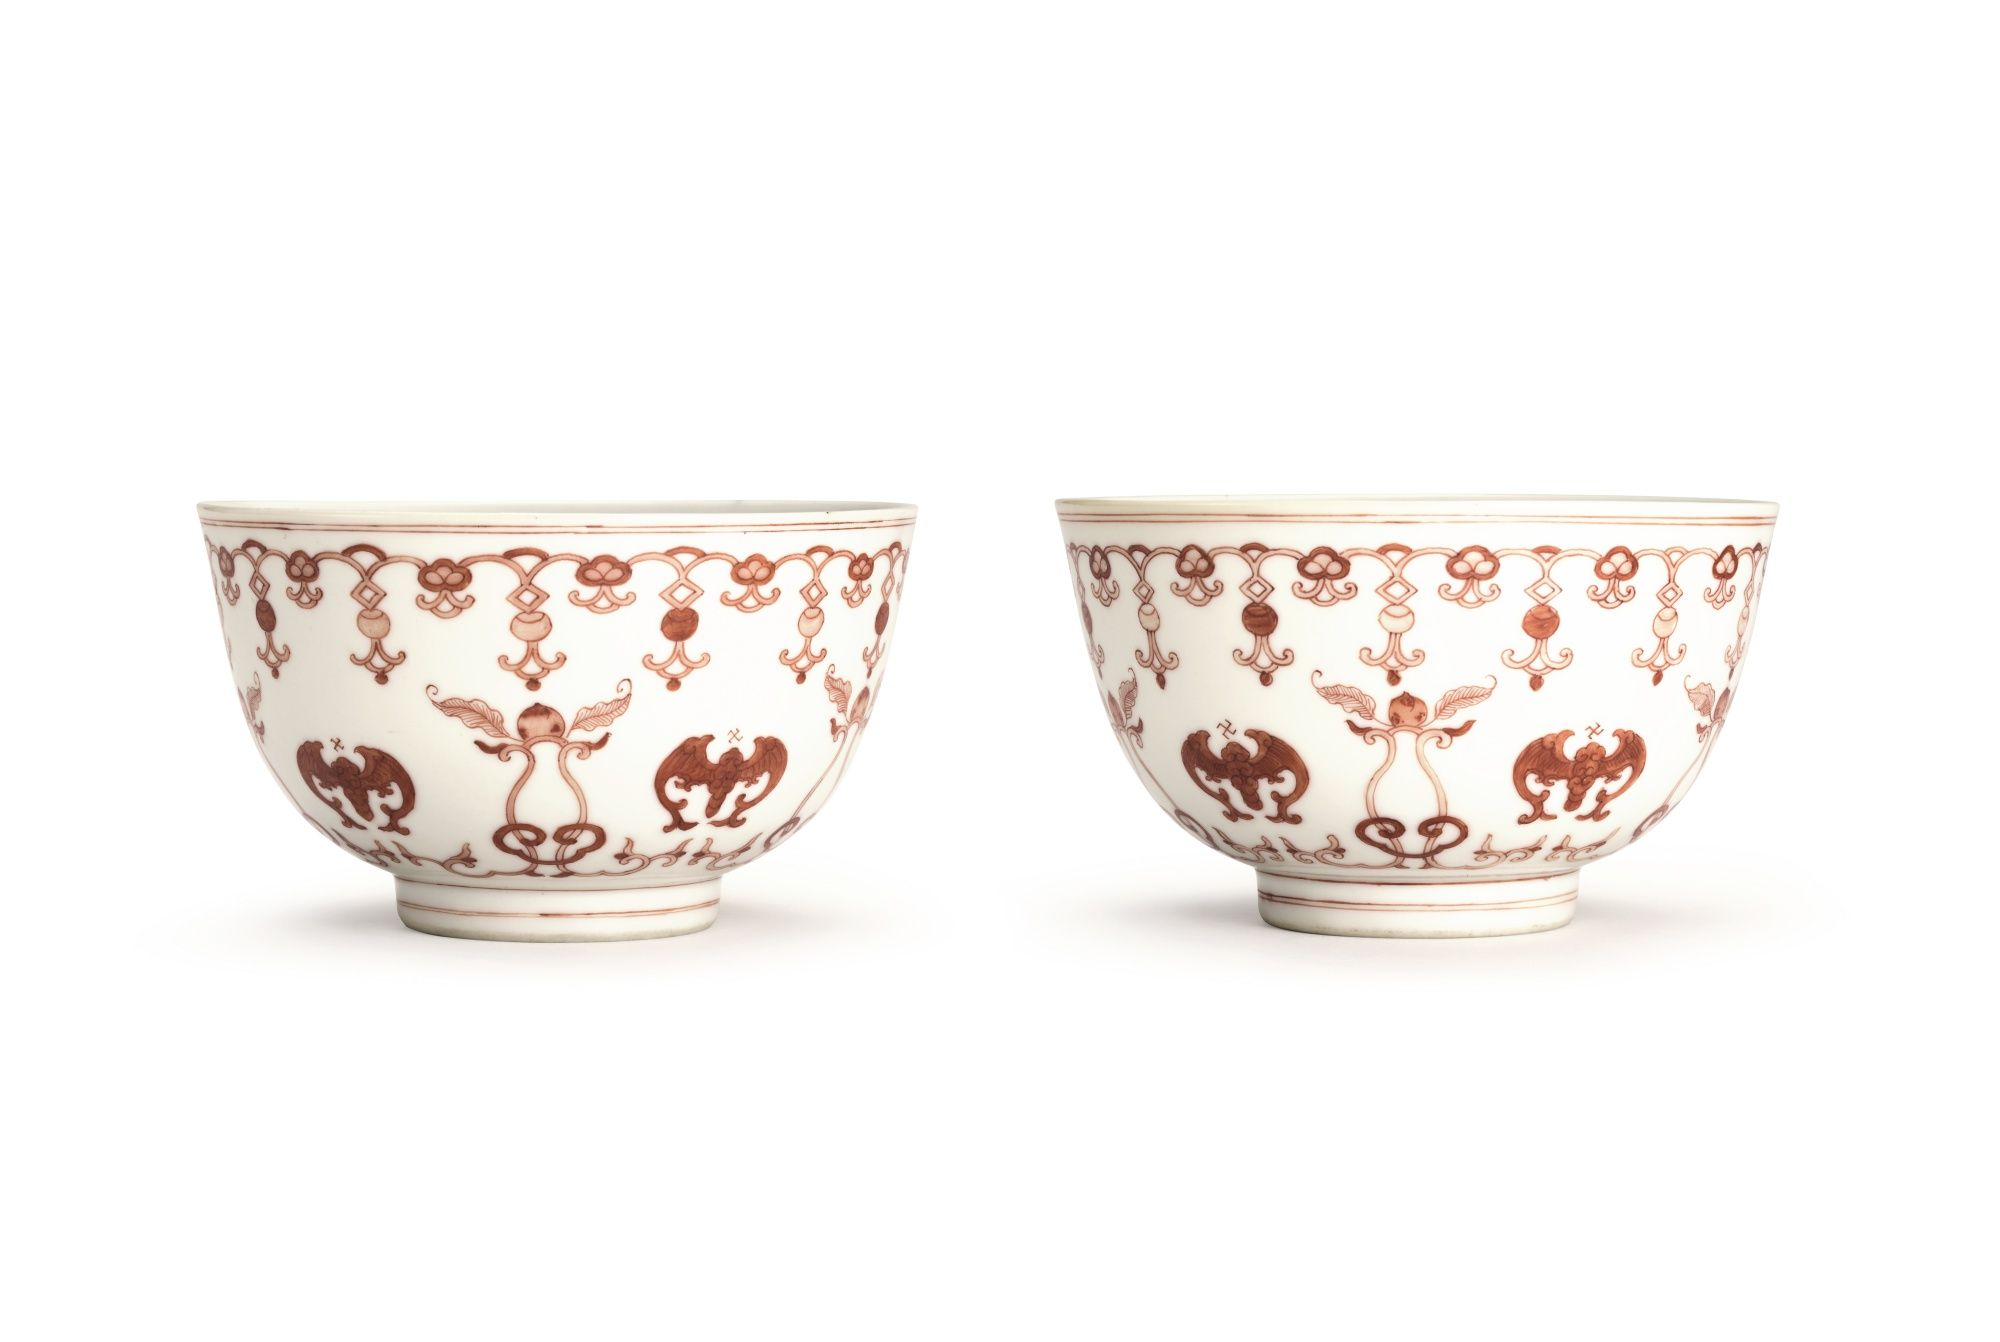 A Pair Of Iron Red Decorated Peach And Bat Bowls Br Seal Marks And Period Of Daoguang Lot Sotheby S Iron Red Chinese Pottery Porcelain Ceramics